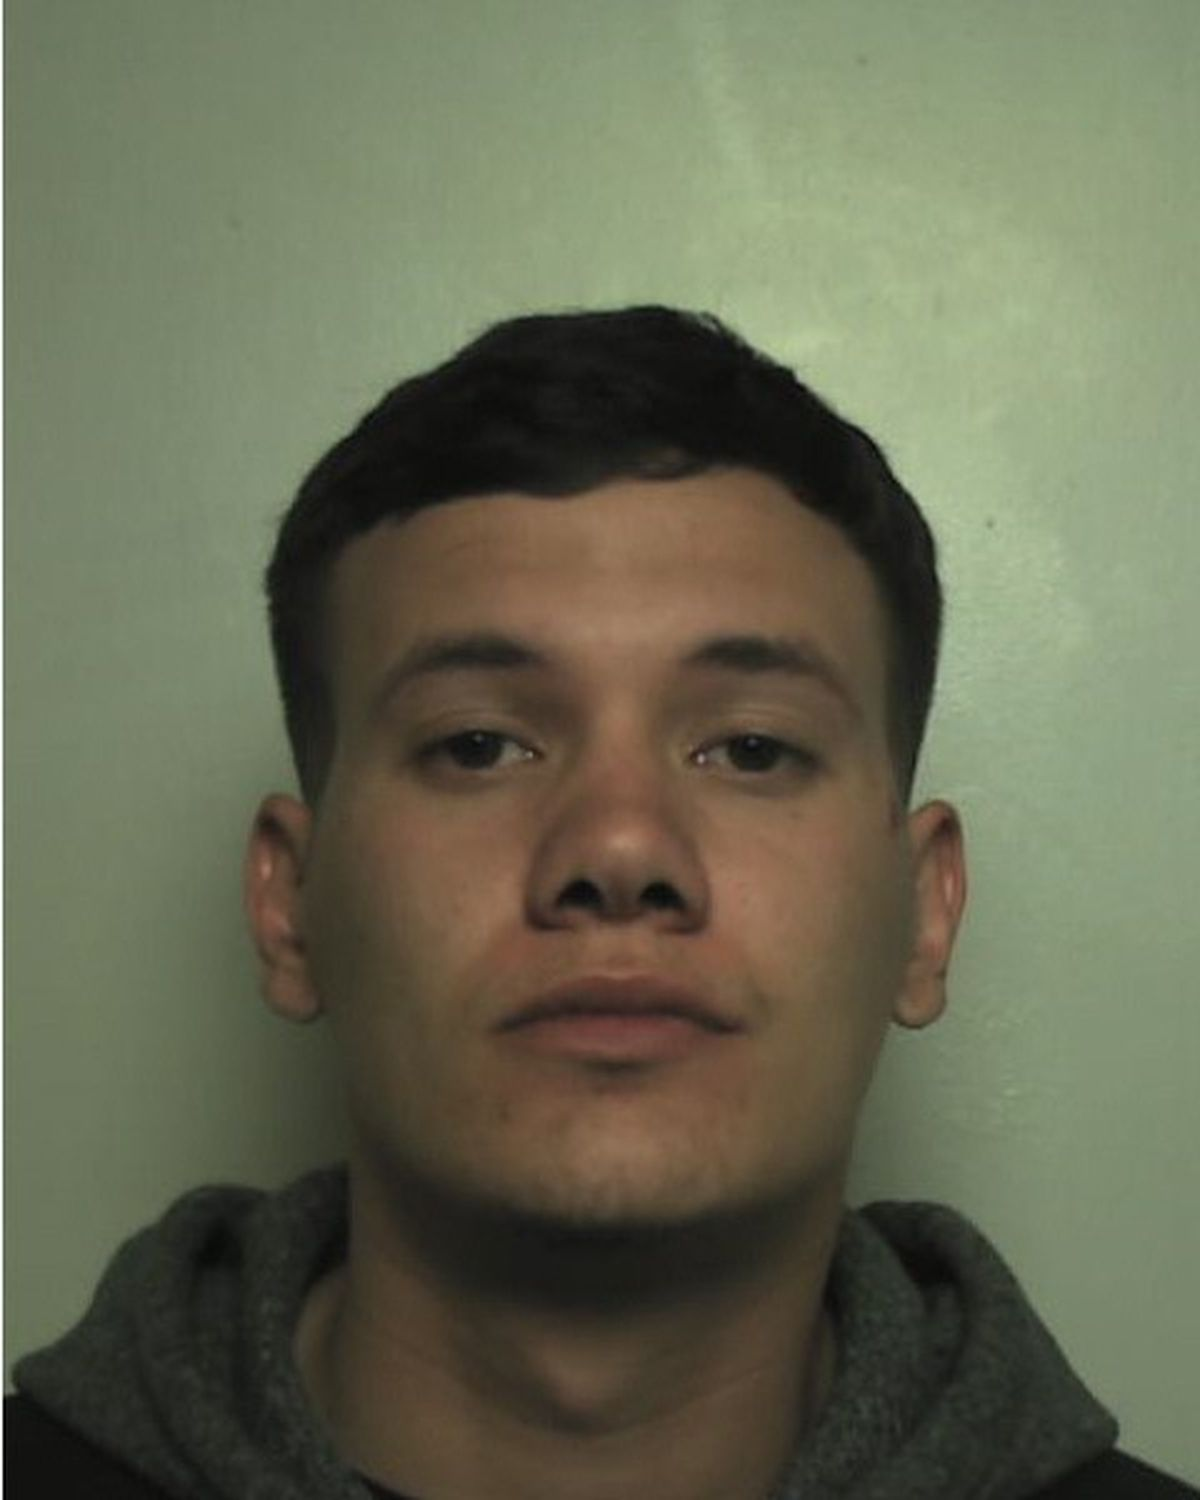 Nathan Somers was jailed for three years after pleading guilty to burglary and handling stolen goods